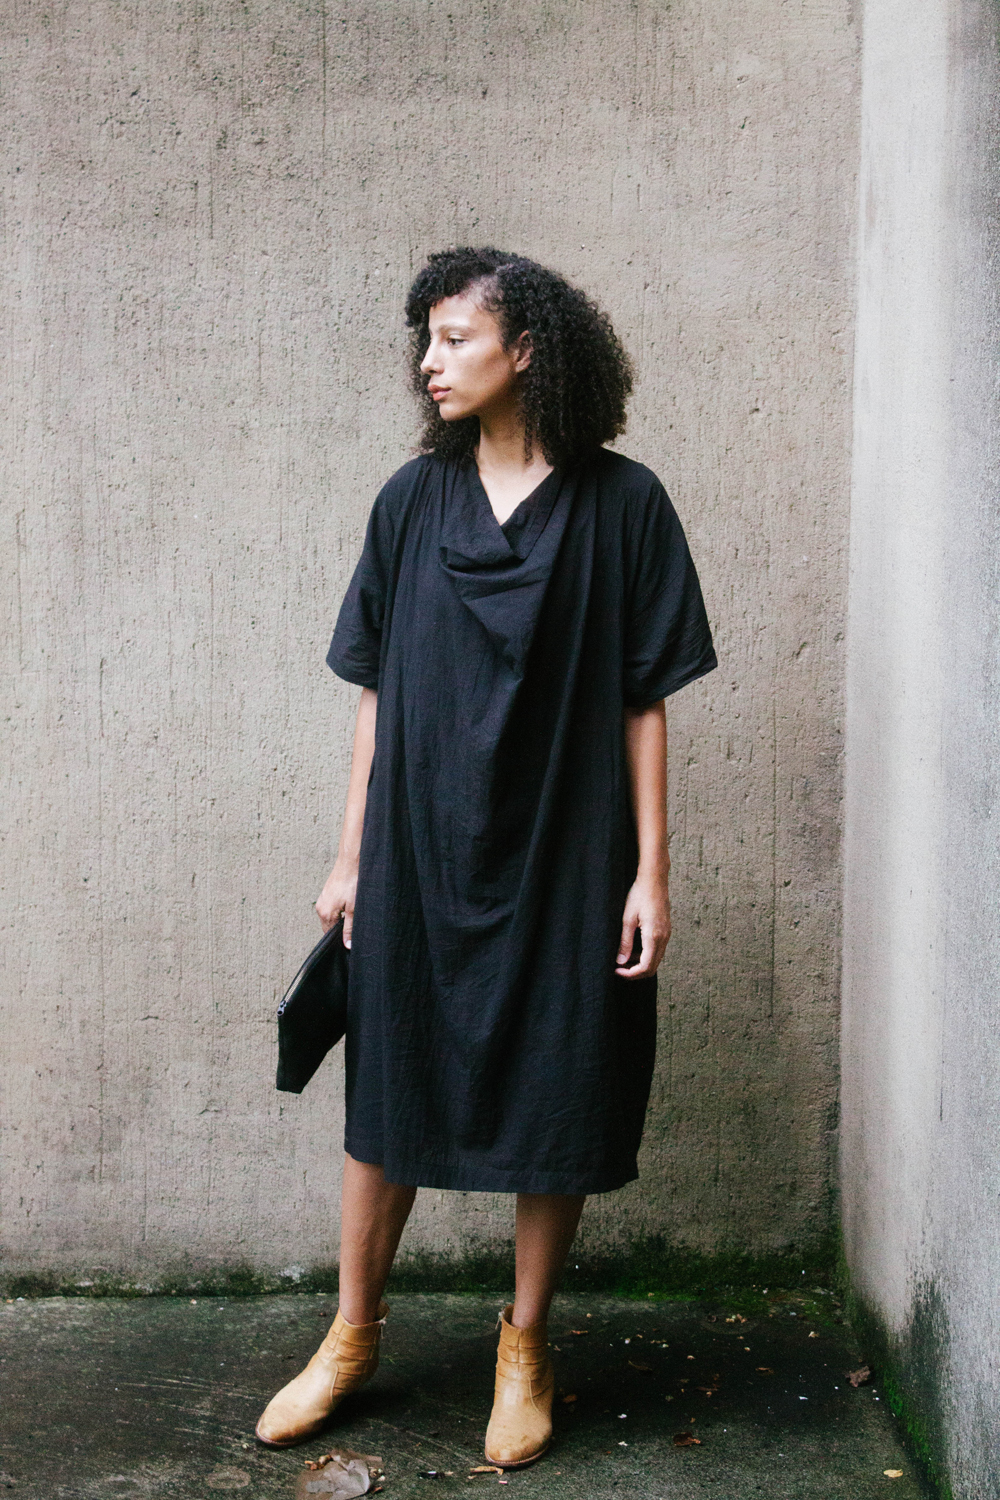 The Summer of the Black Dress | Good Bones